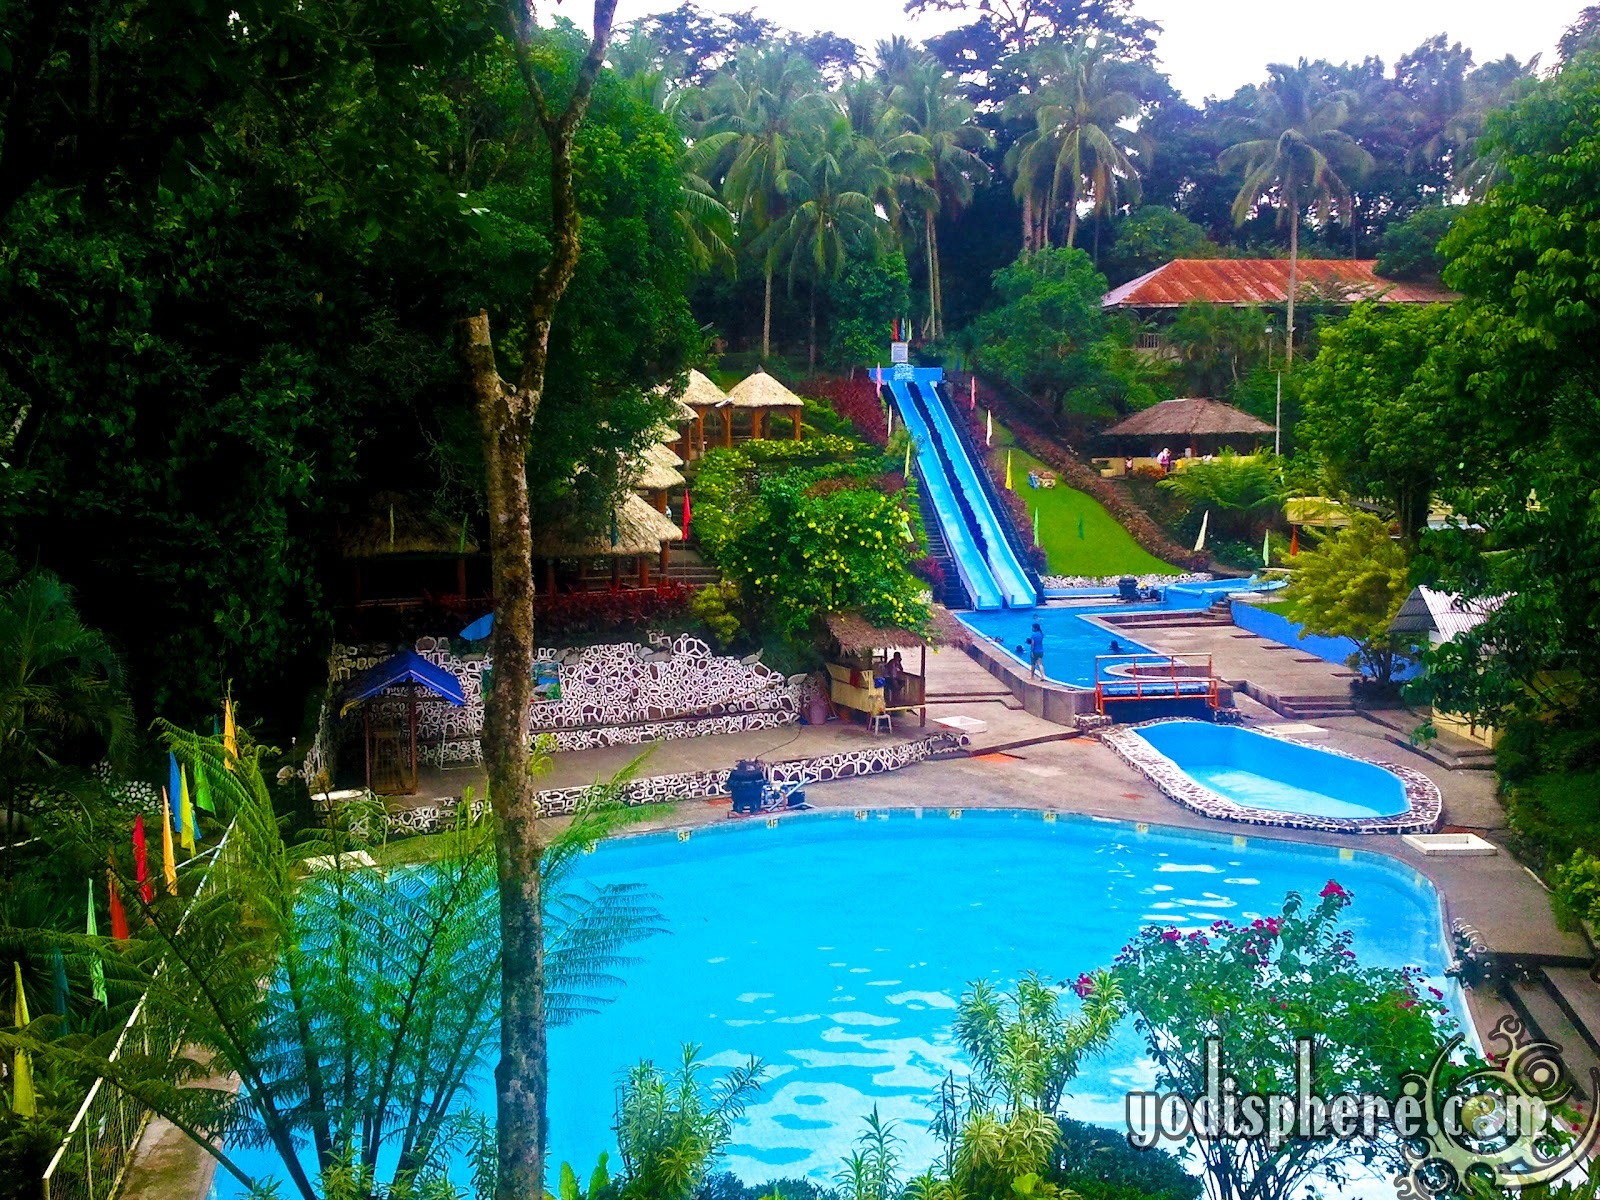 Villa Sylvia Resort In Nagcarlan Refreshing Place To Stay On Your Laguna Side Trip